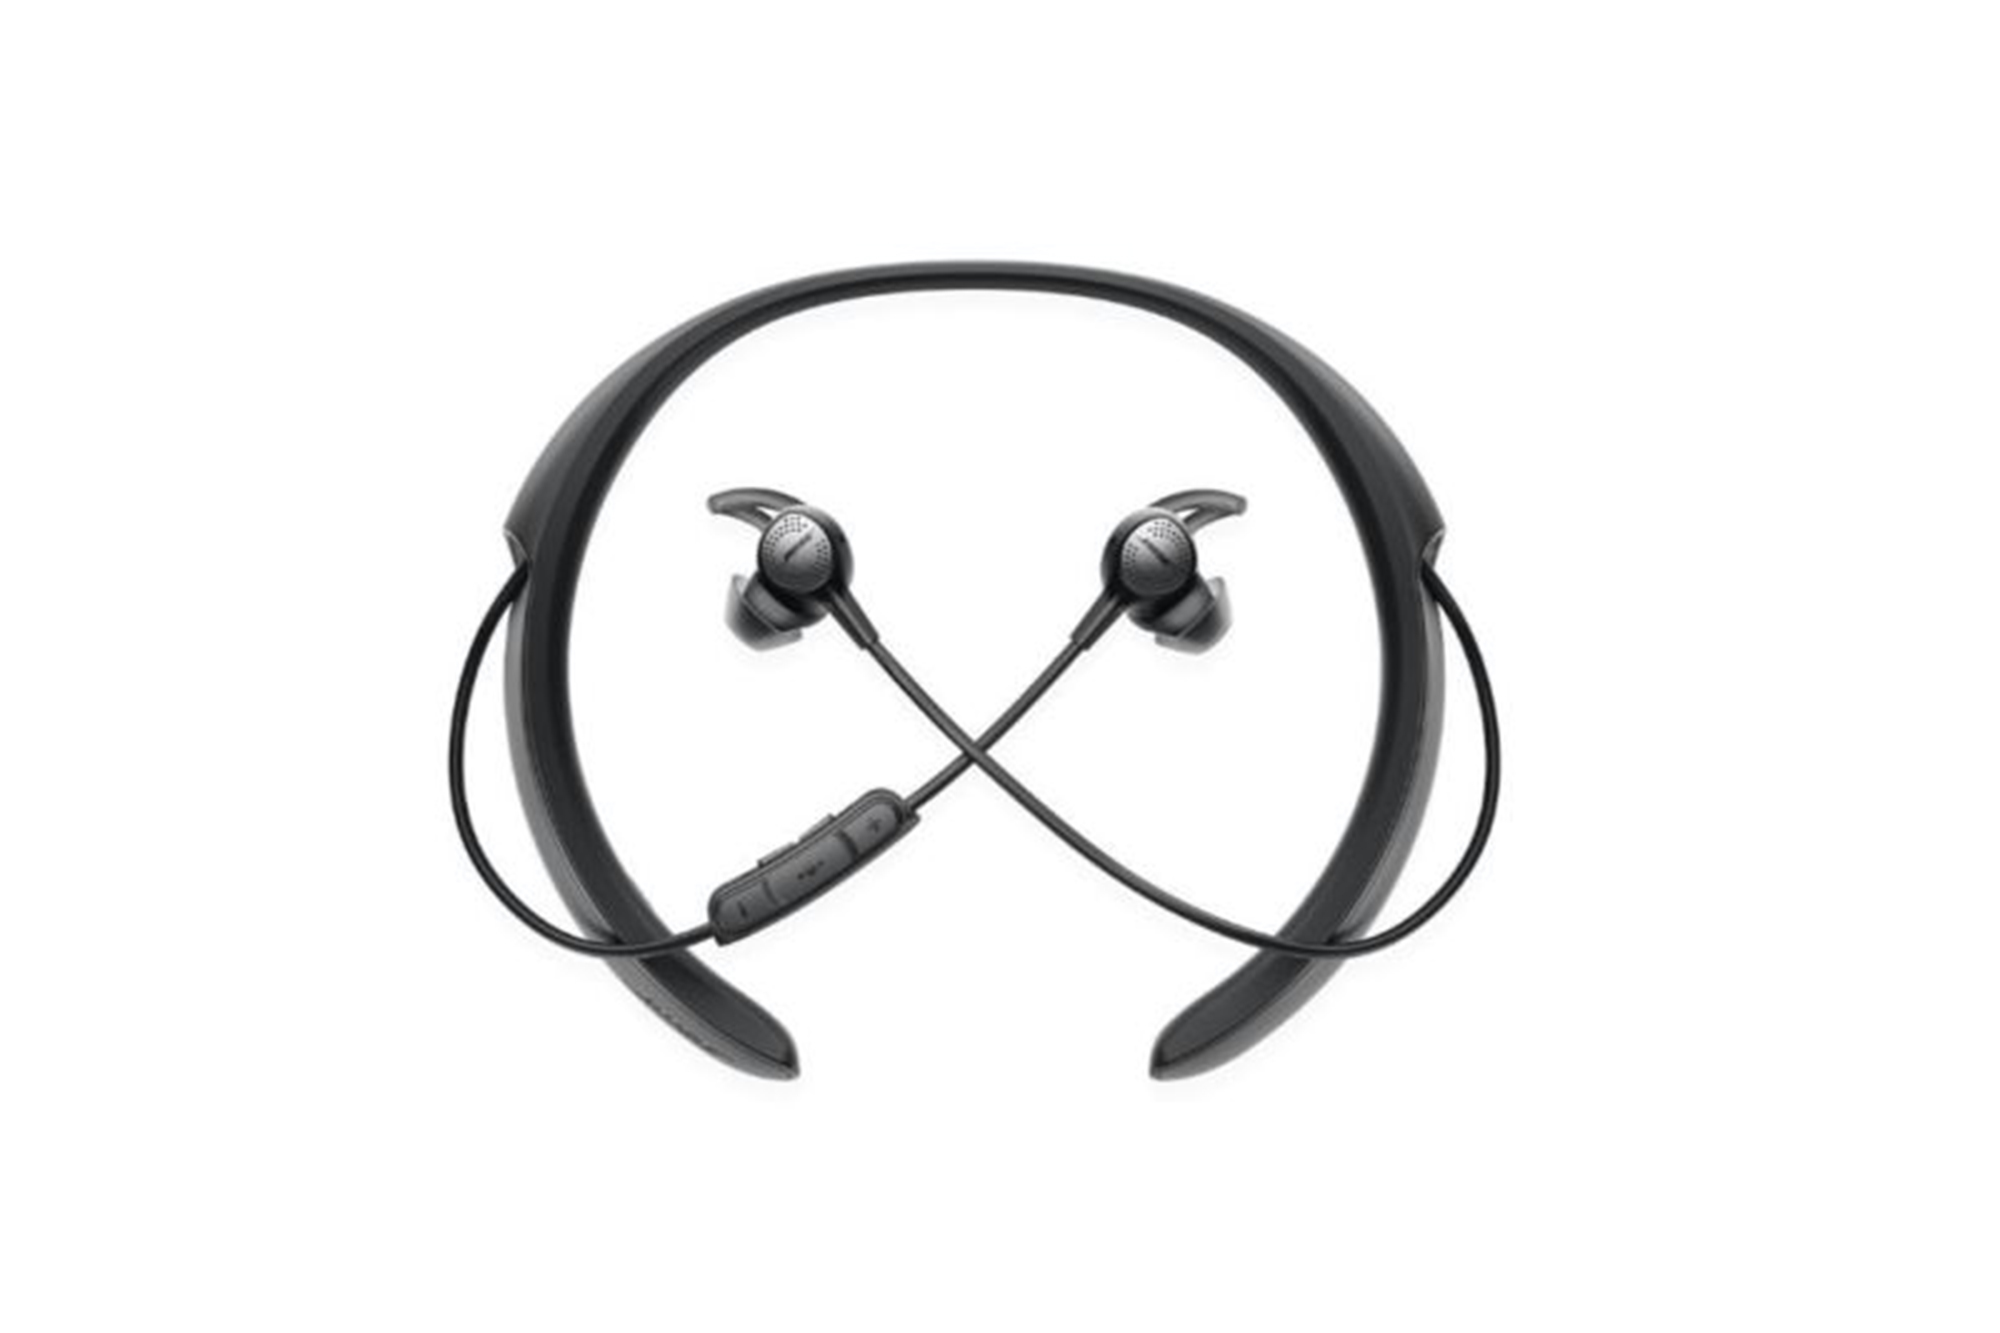 Bose refurbished earbuds - bose earbuds bluetooth noise cancelling